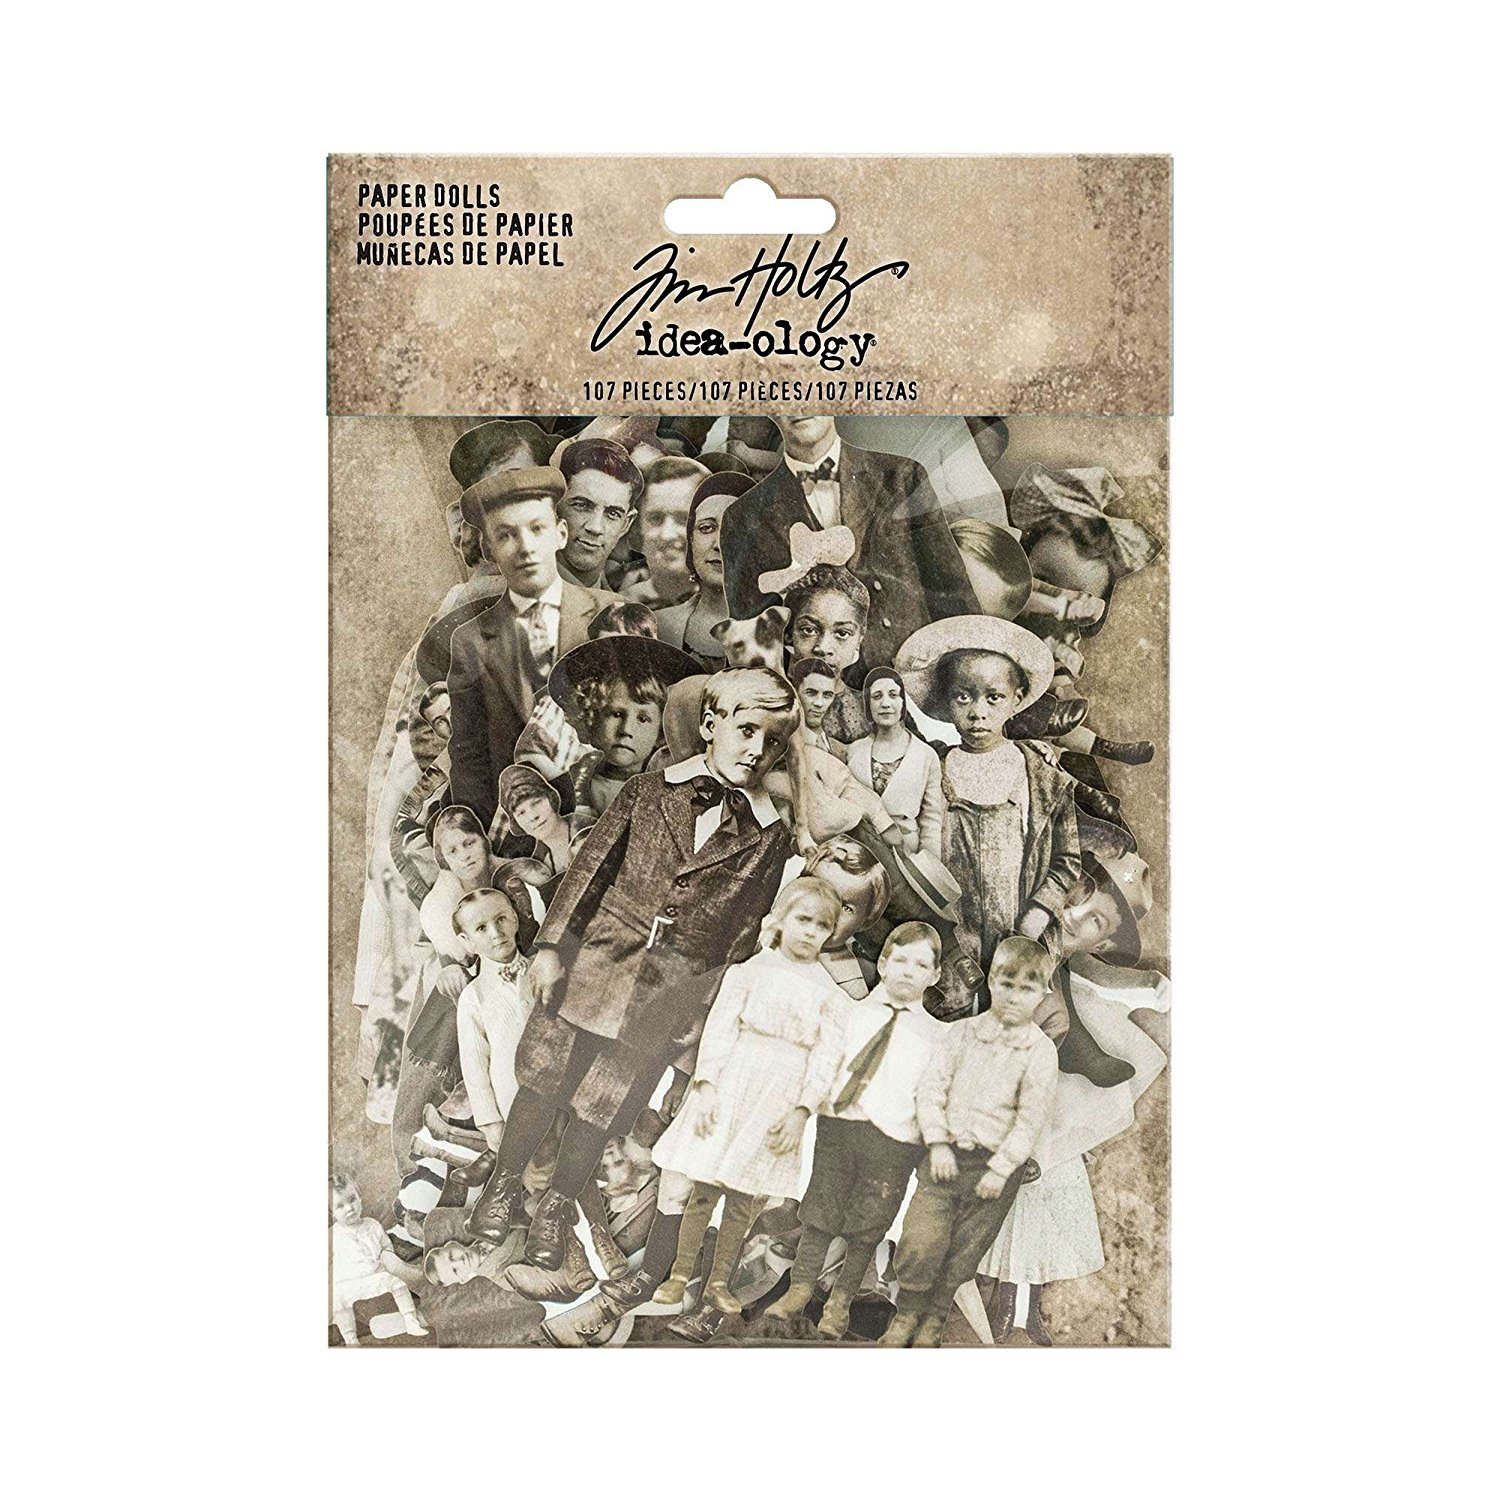 Paper Dolls by Idea-ology, Card Stock, 107 Dye-Cut Printed Pieces (TH93555), A gathering of clipped vintage portraits used in collage or mixed media By Tim Holtz